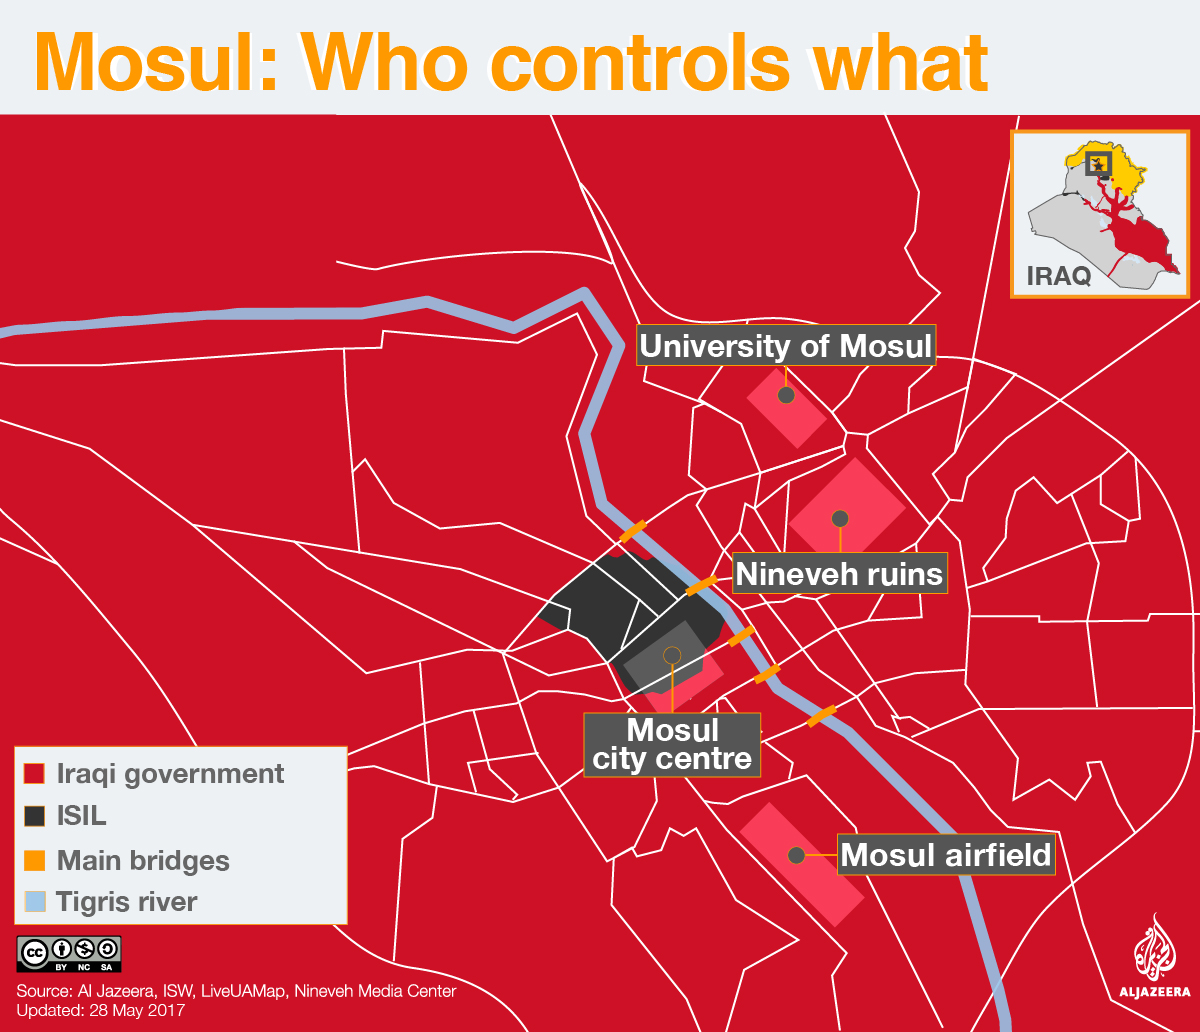 mosul who controls what map infographic